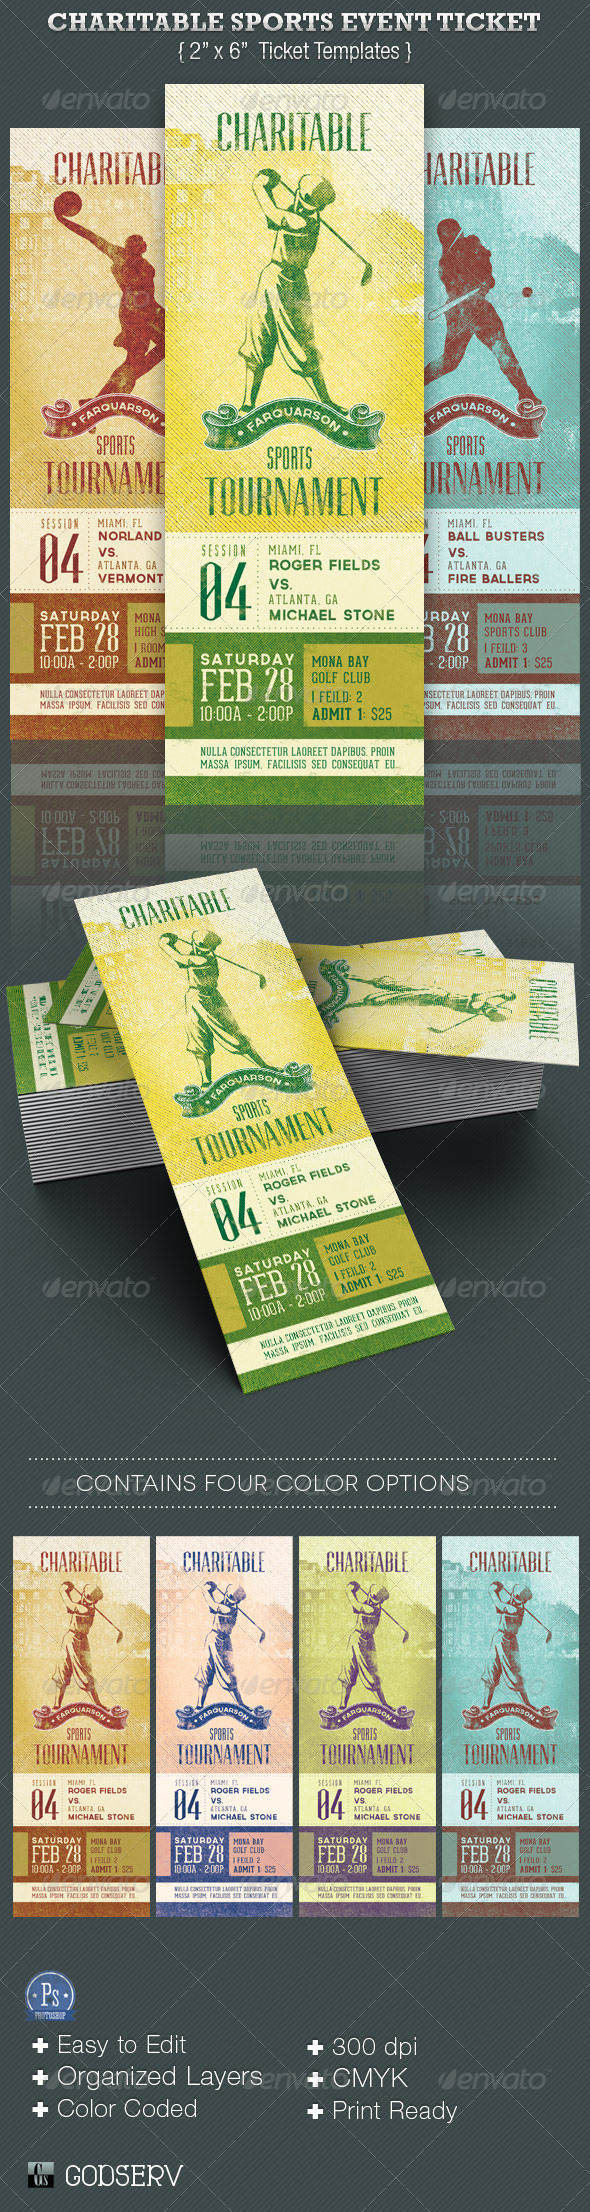 Charitable Sports Event Ticket Template - Miscellaneous Print Templates